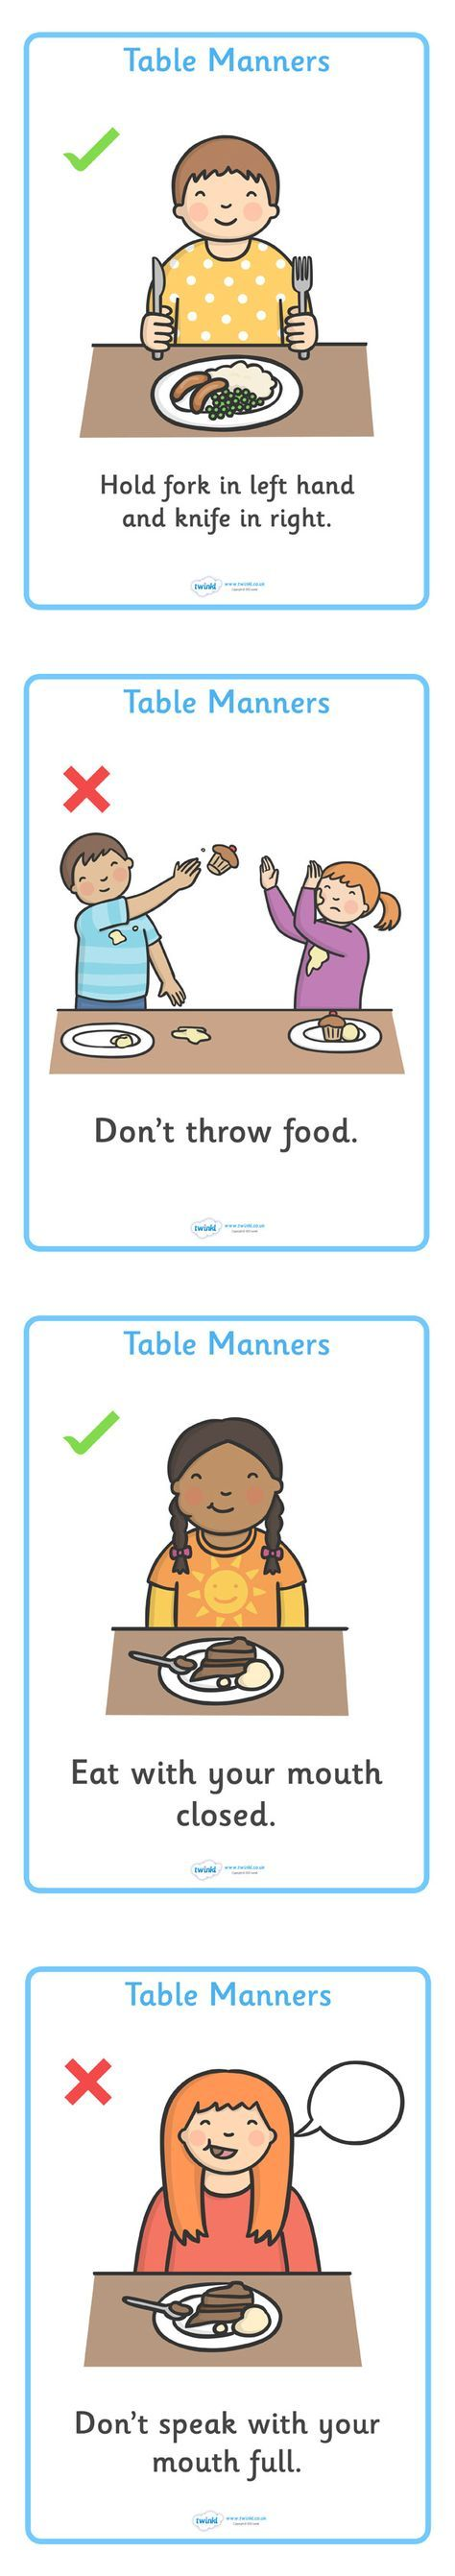 Twinkl Resources >> Table Manners Rules Display Posters